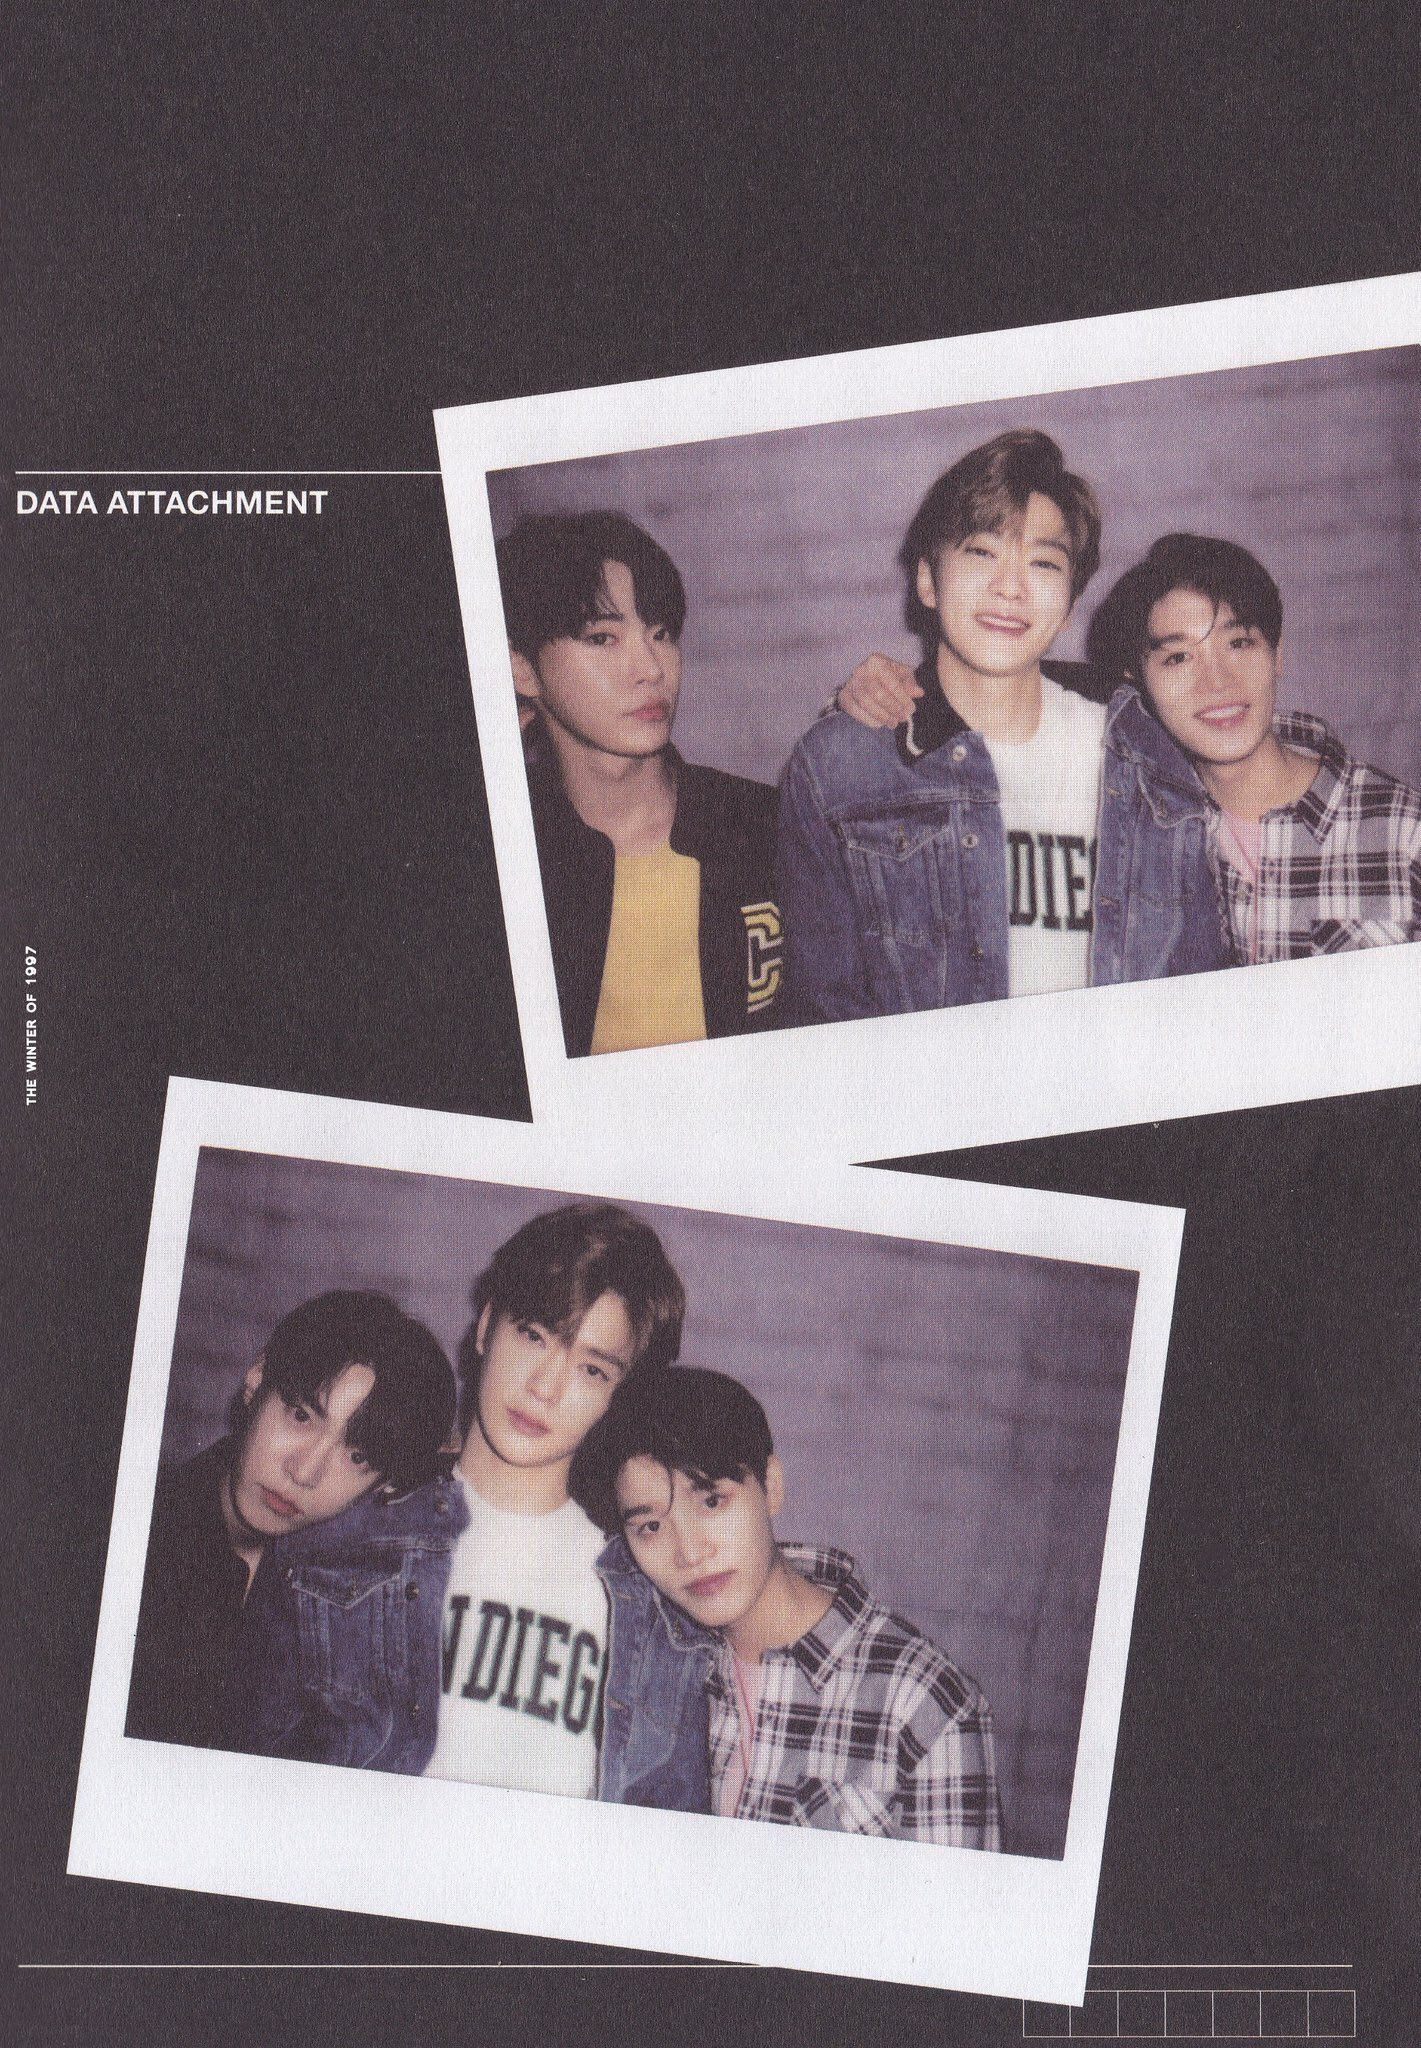 ranof, jfb on in 2019 | neo exe | Nct, Nct taeil, Nct album